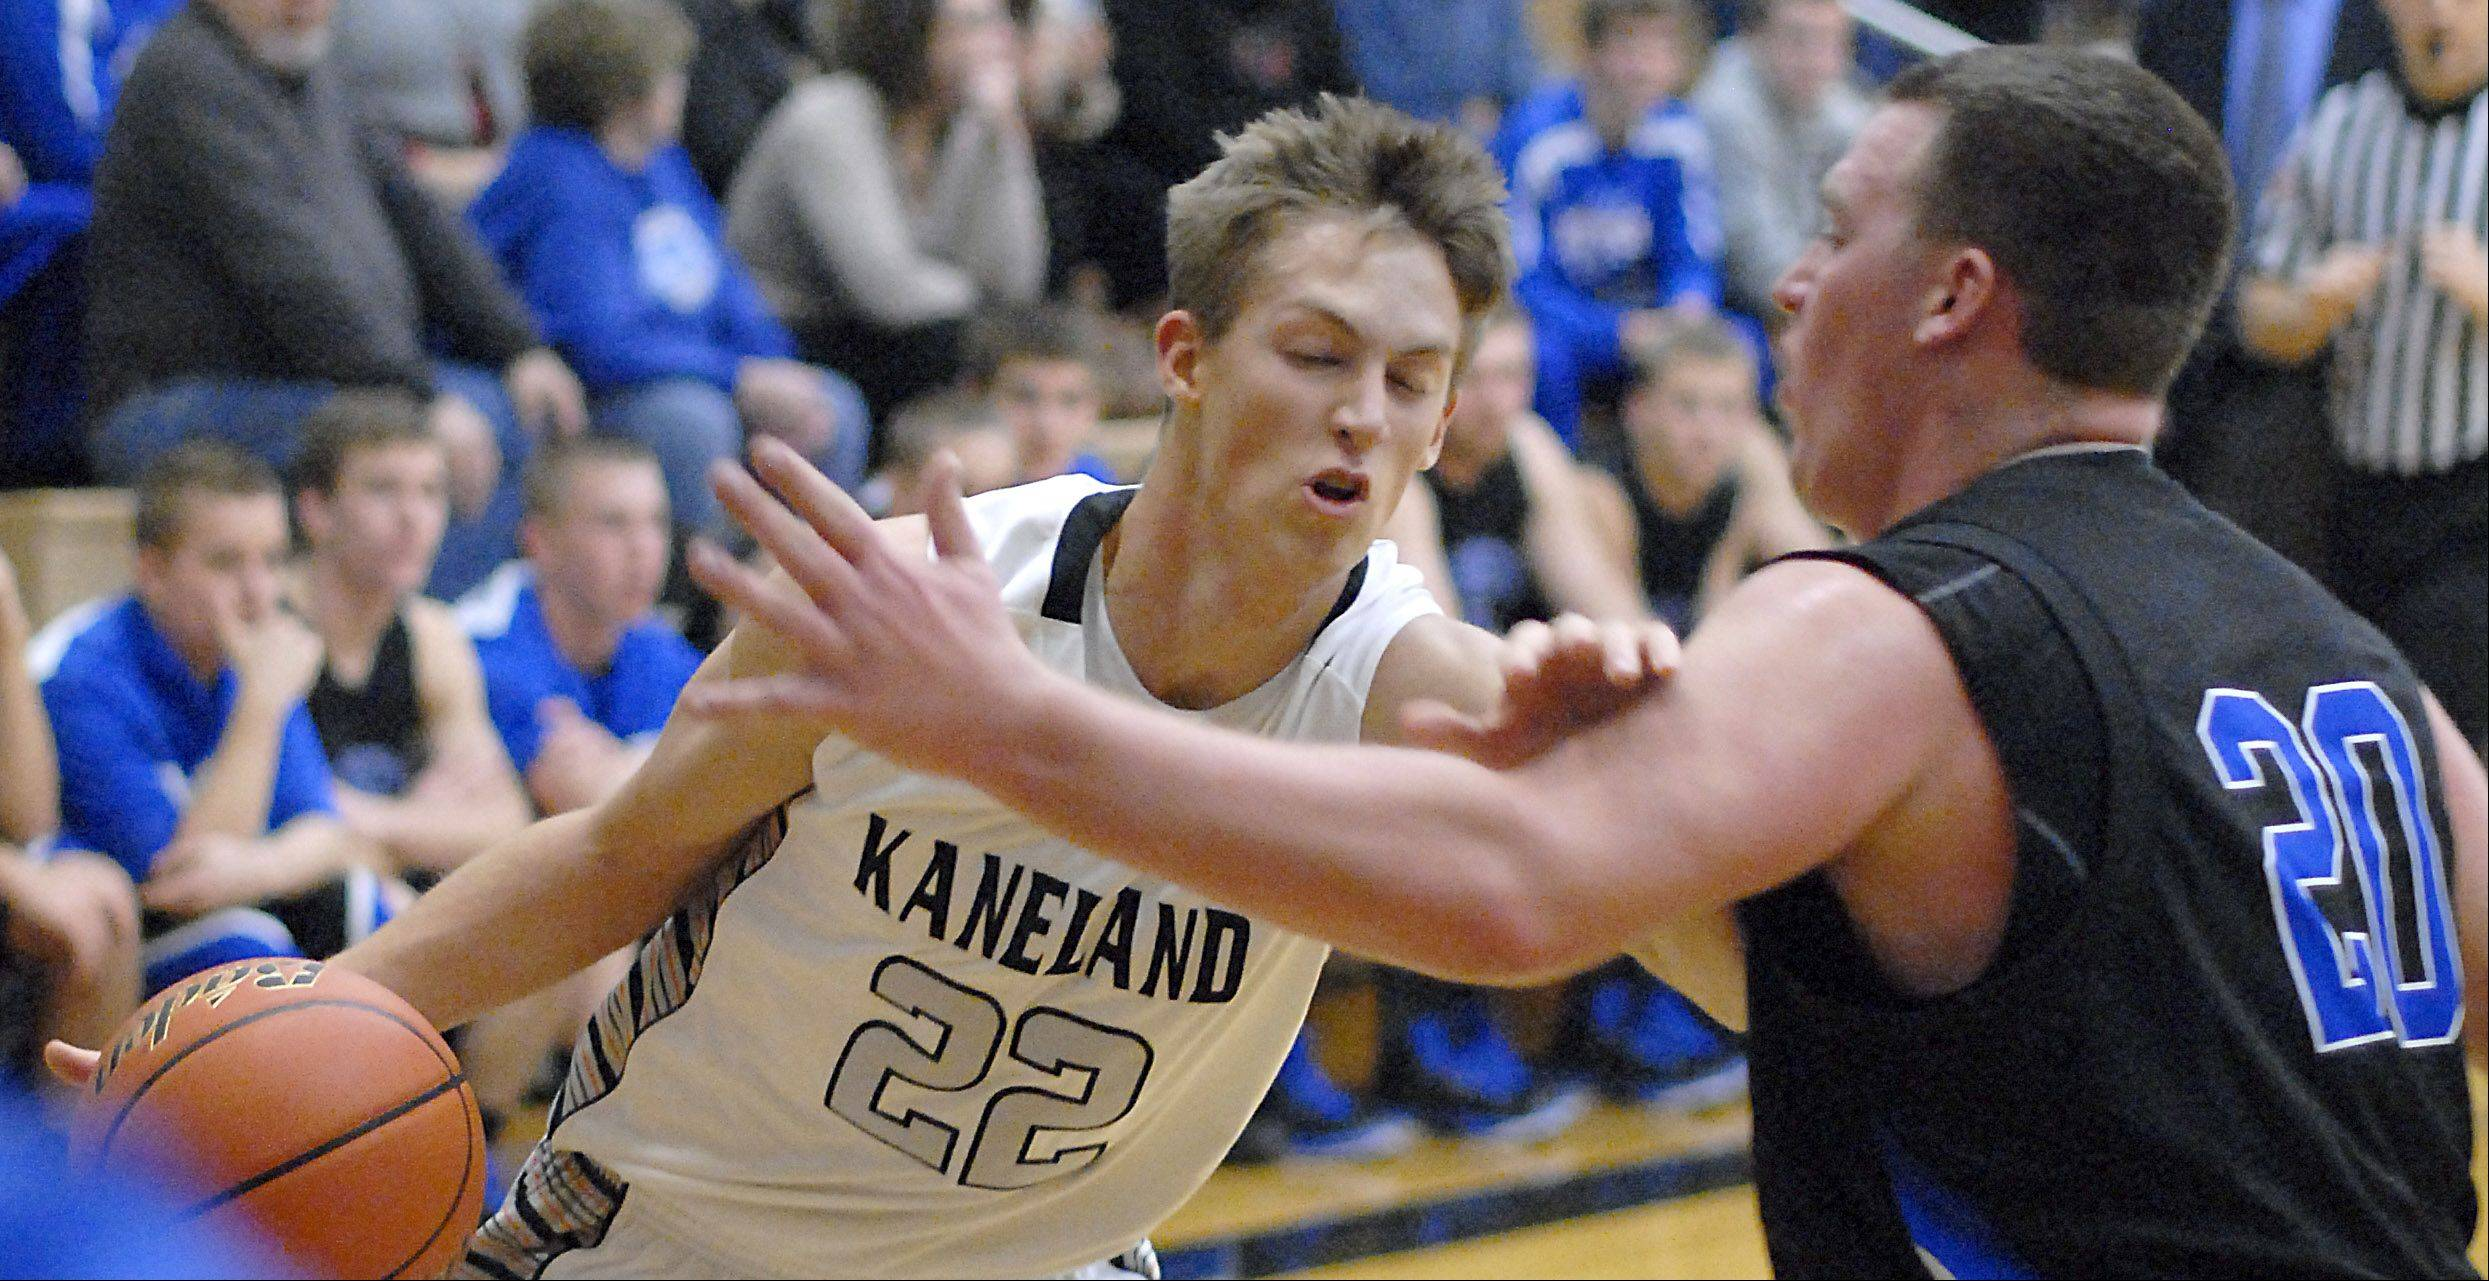 Images: Hinckley Big Rock vs. Kaneland, boys basketball